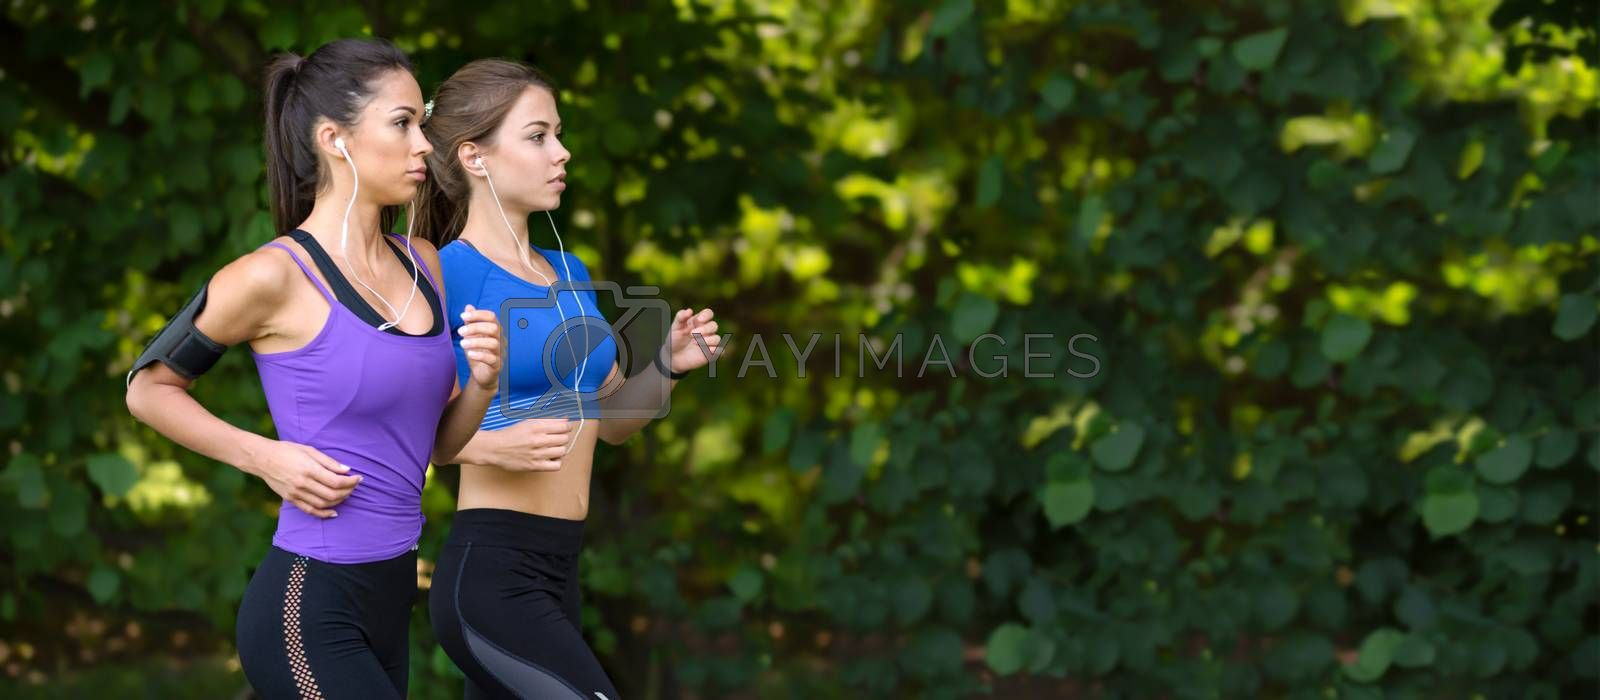 Healthy lifestyle banner - two beautiful fitness girls are jogging in the park on a greenery background (copy space)